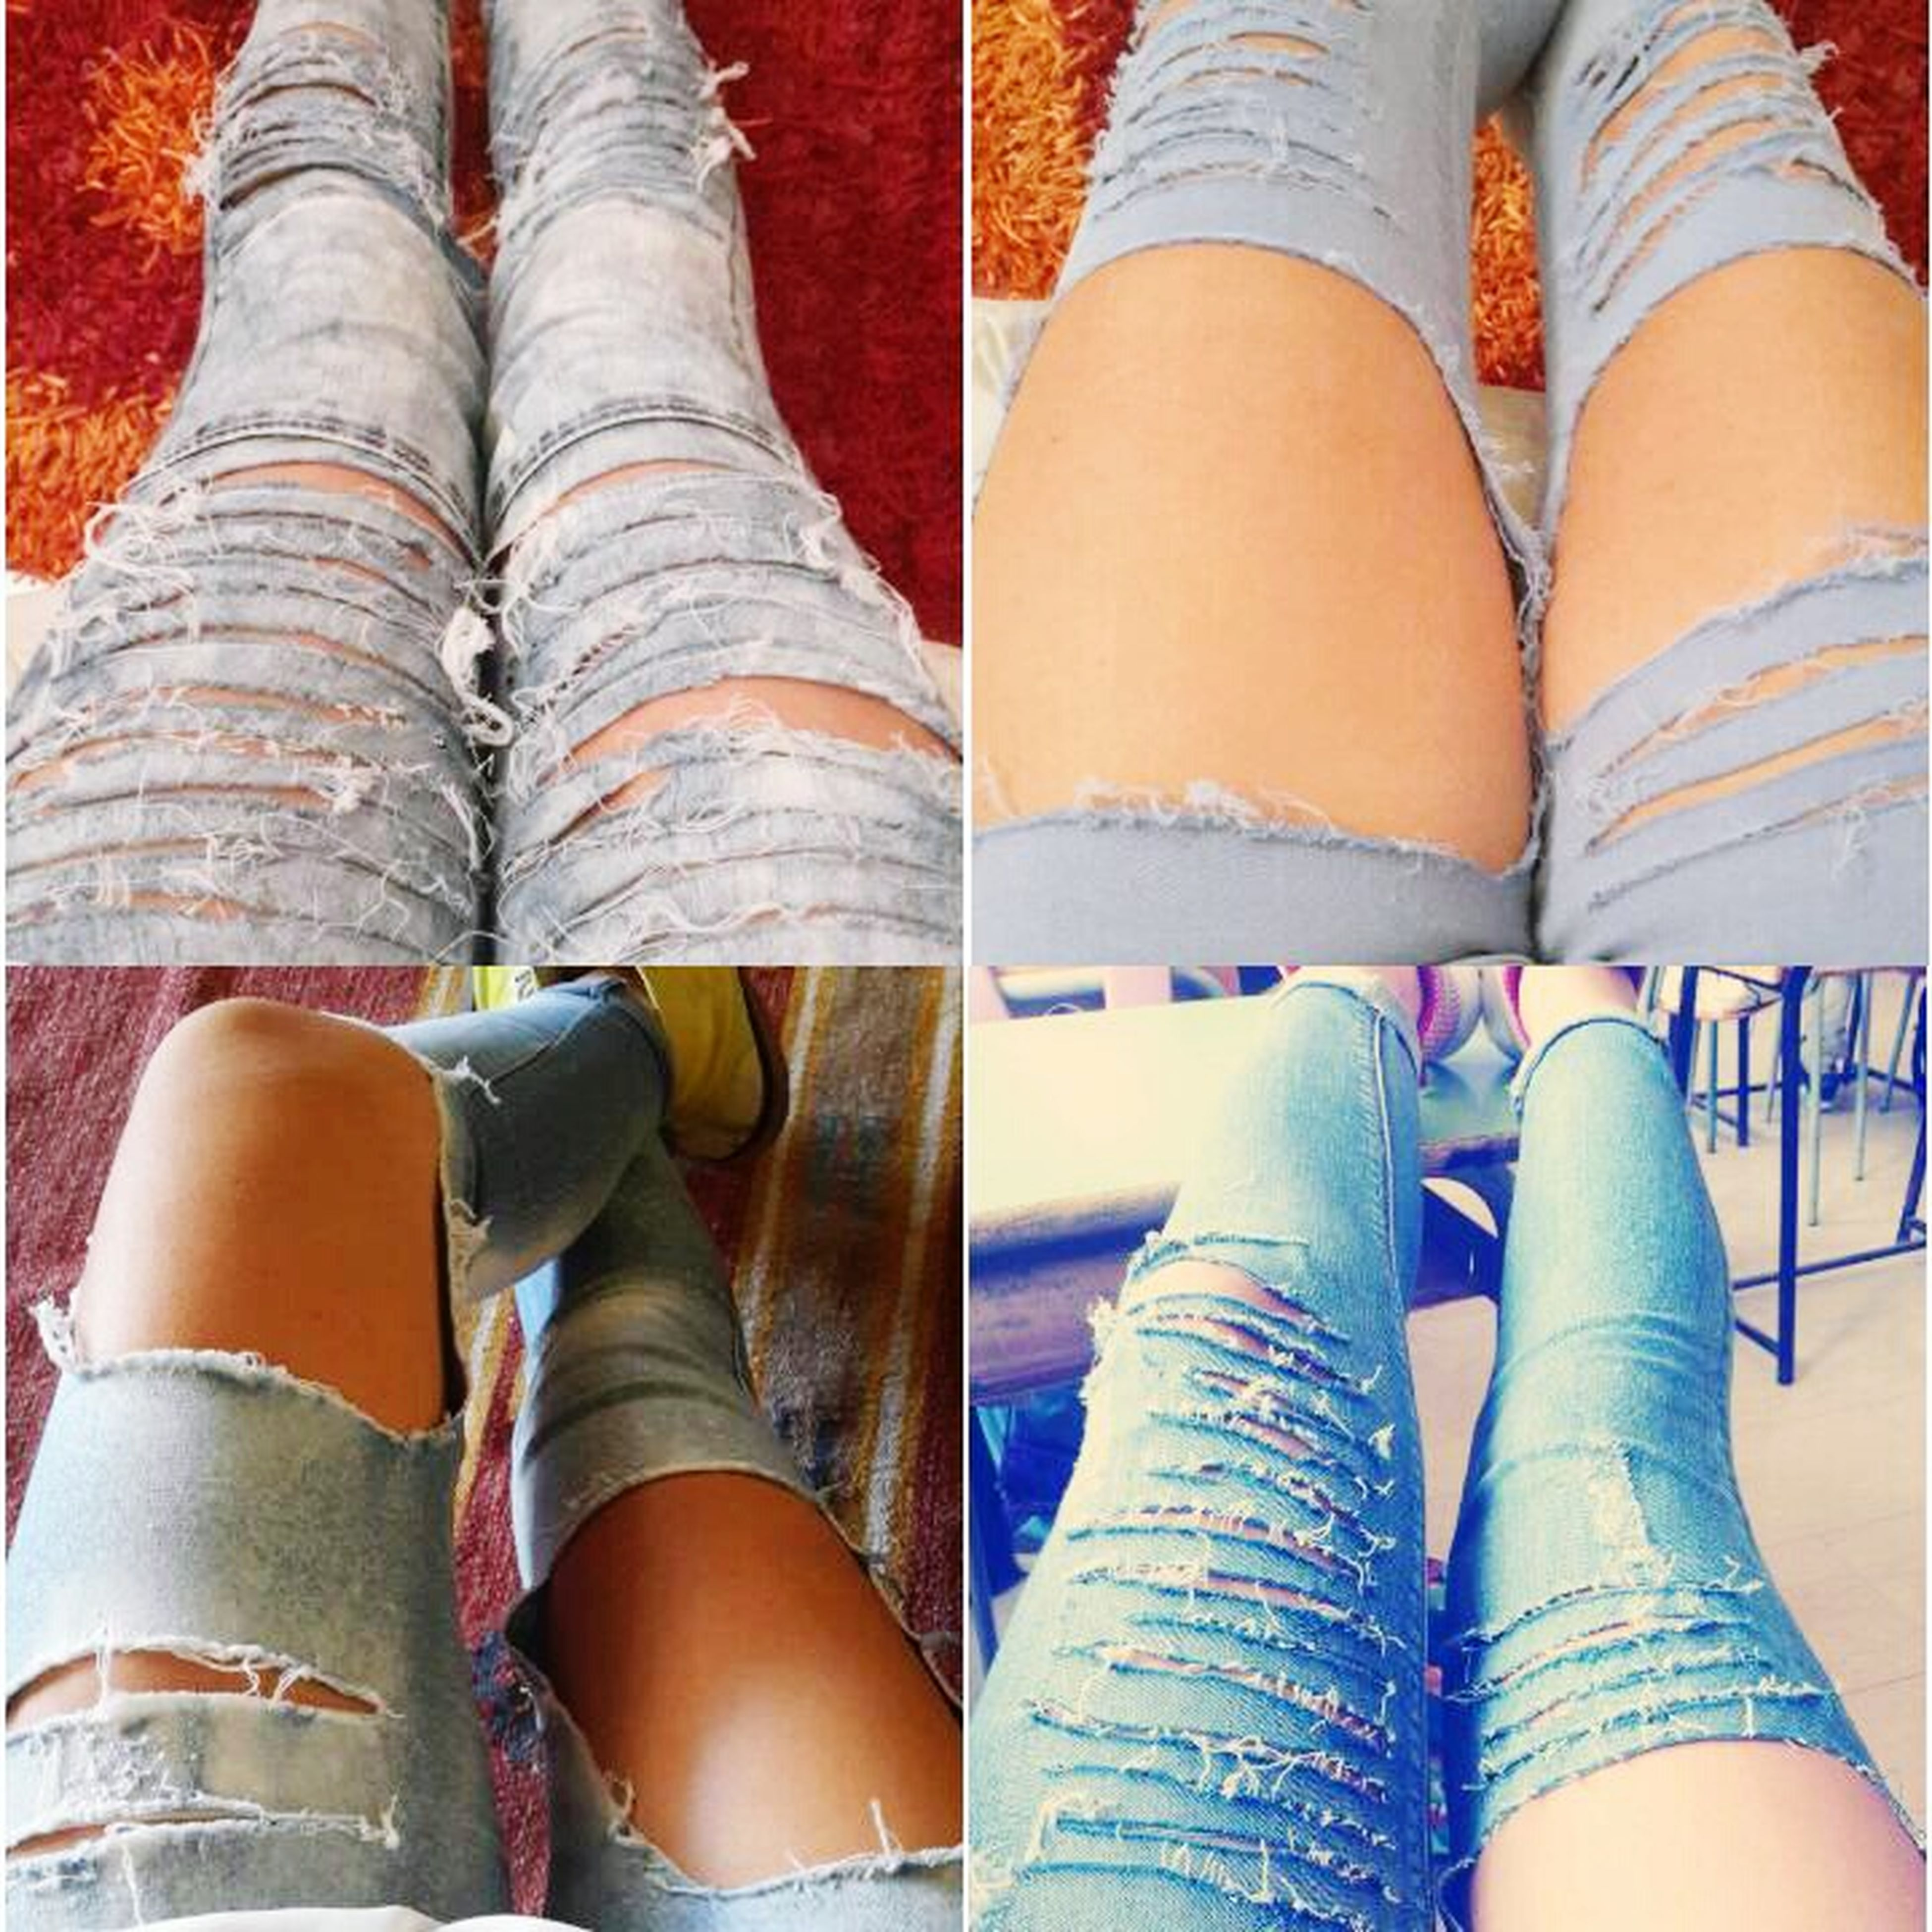 person, low section, shoe, personal perspective, fashion, lifestyles, human foot, standing, side by side, indoors, multi colored, in a row, jeans, close-up, sitting, choice